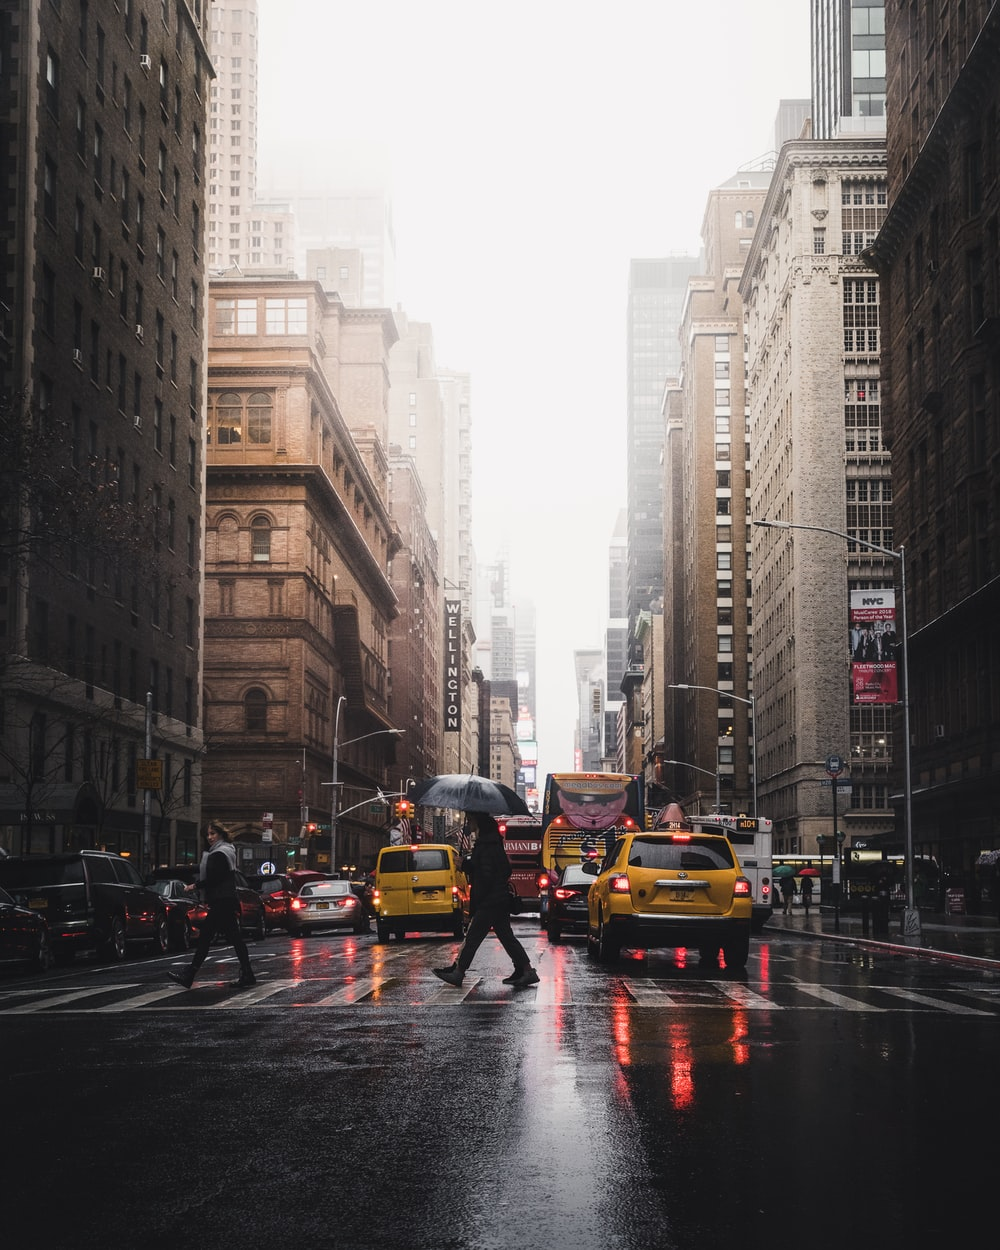 New York City Taxi Cab Pictures Download Free Images On Unsplash